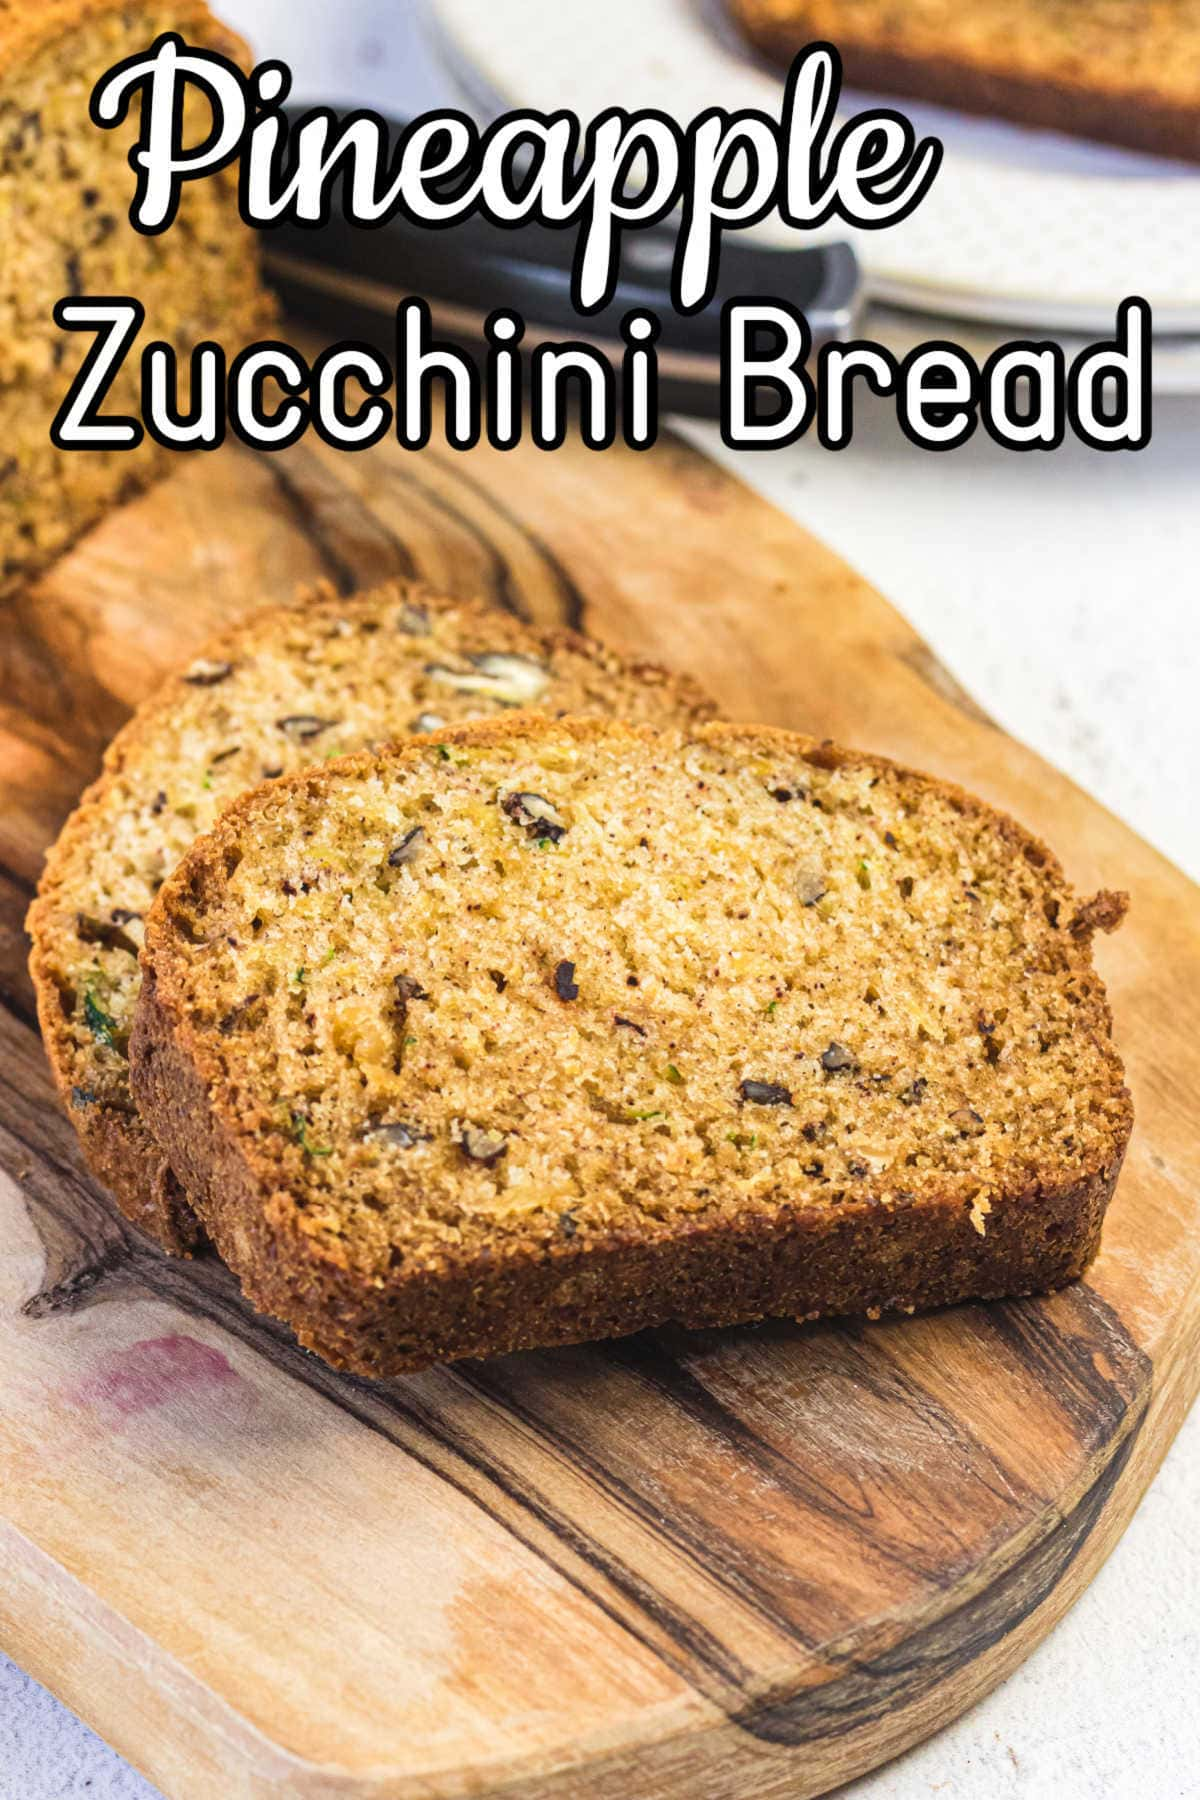 Closeup of the zucchini bread slices showing texture. Title text overlay.